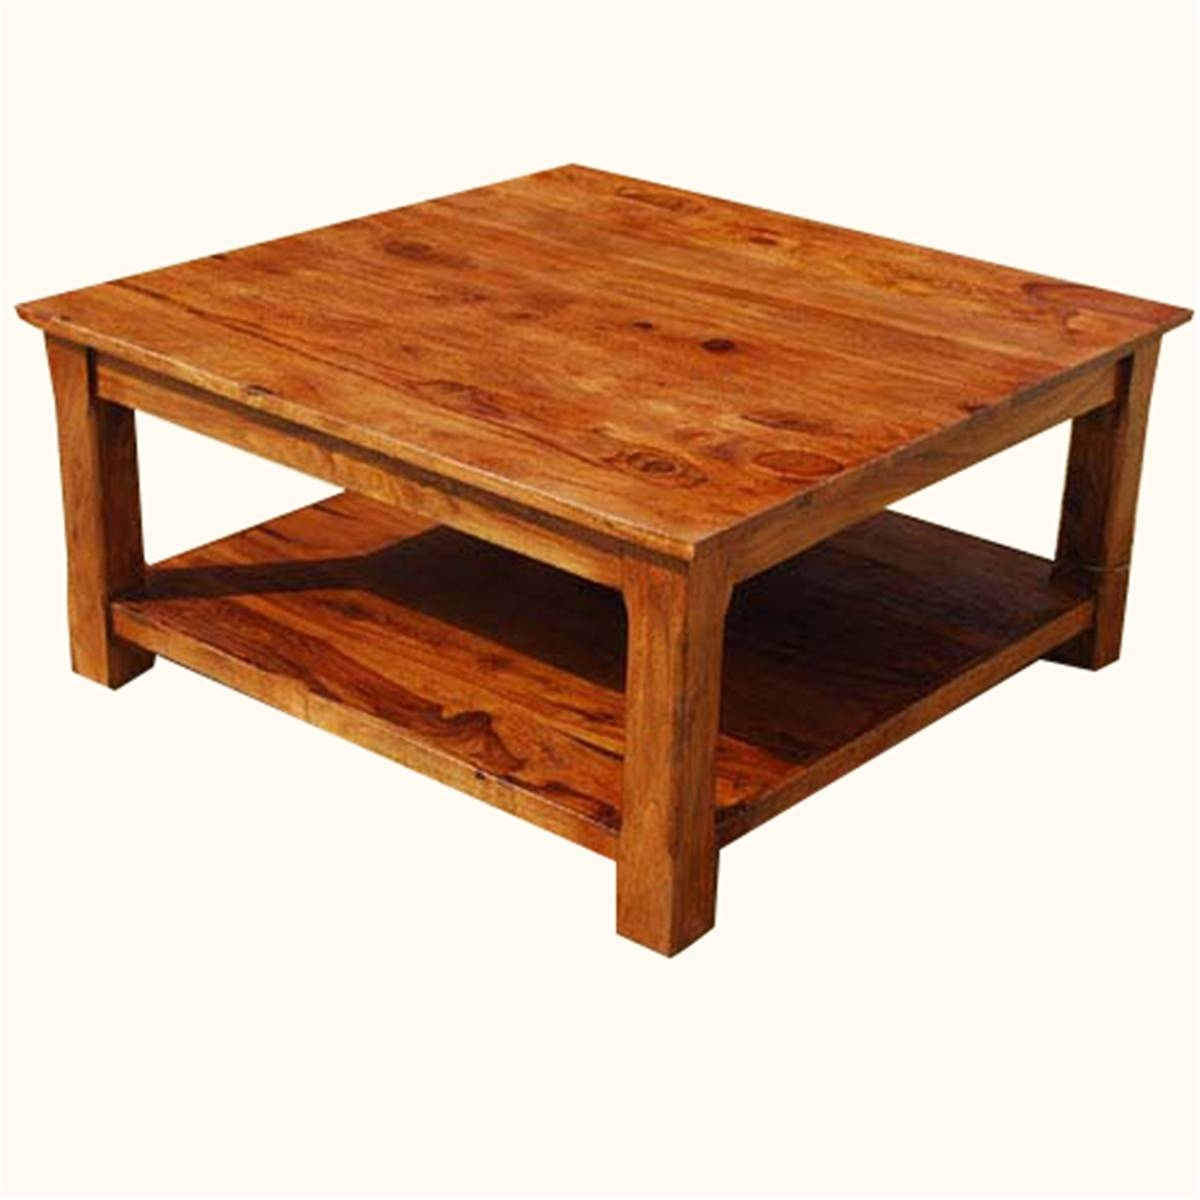 Big Wooden Coffee Table – Coffee Addicts In Large Solid Wood Coffee Tables (View 4 of 15)